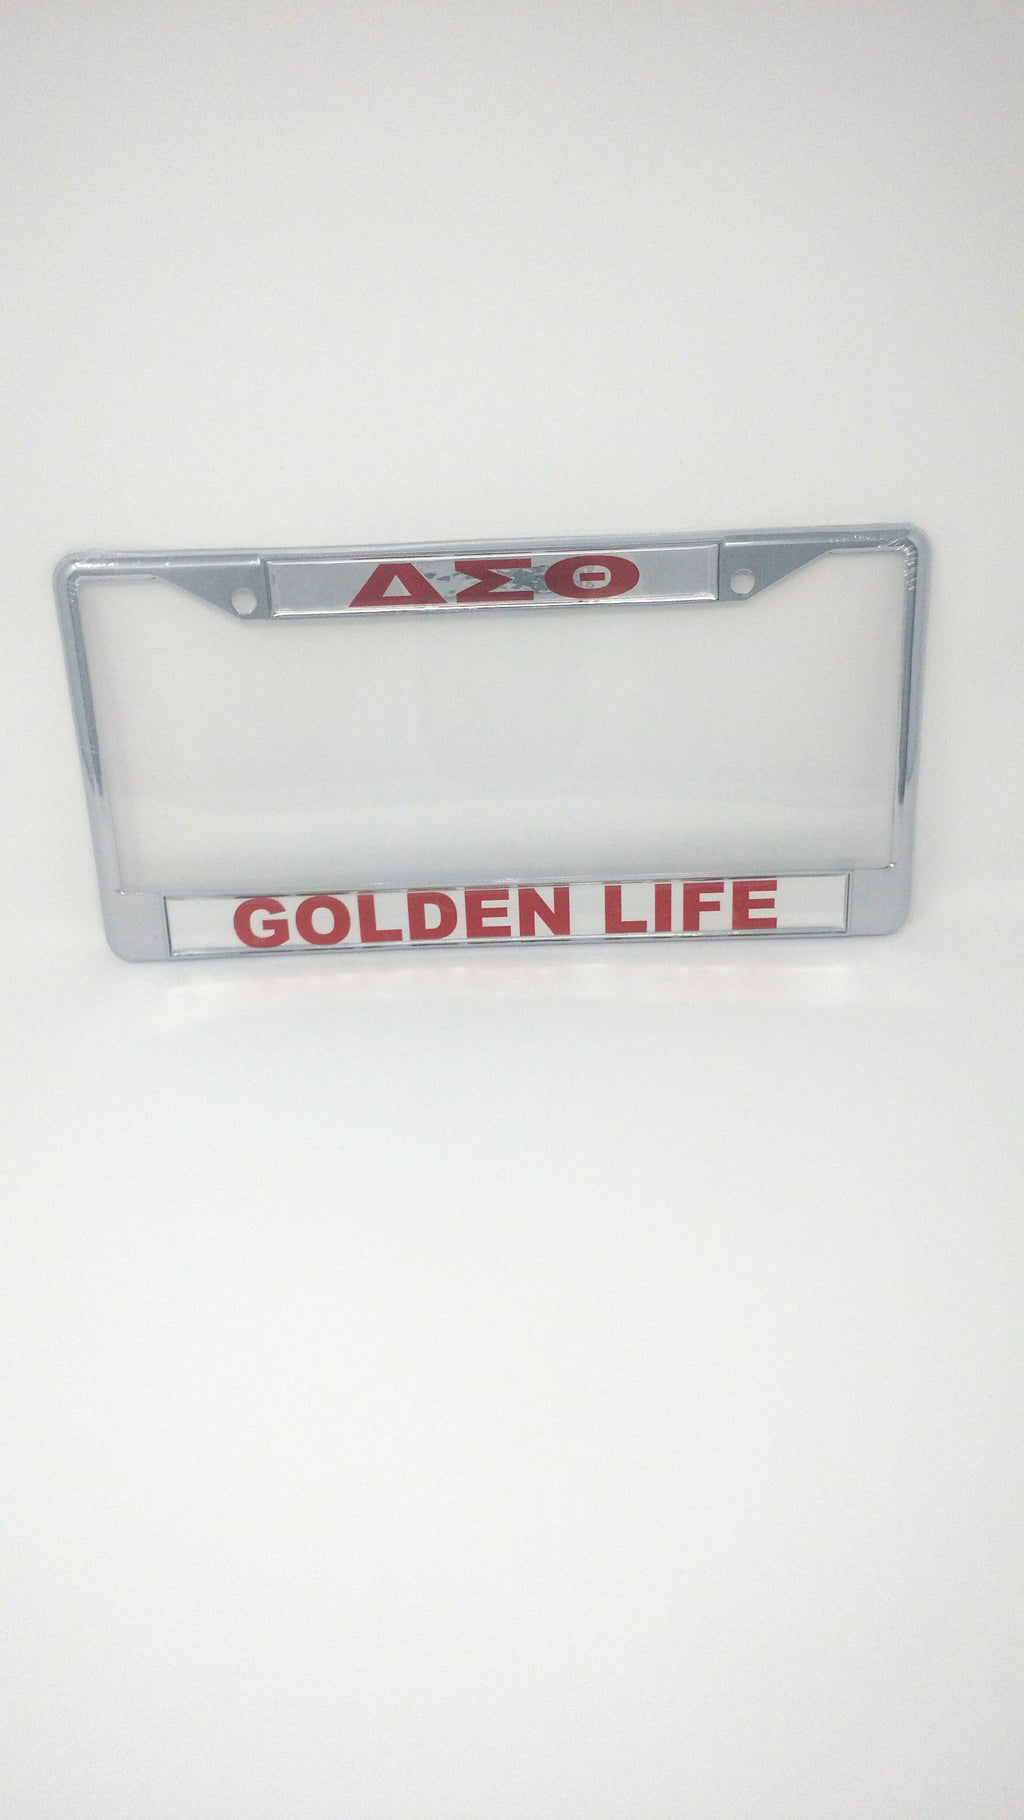 Delta Sigma Theta Mirror License Plate Frame – Golden Life